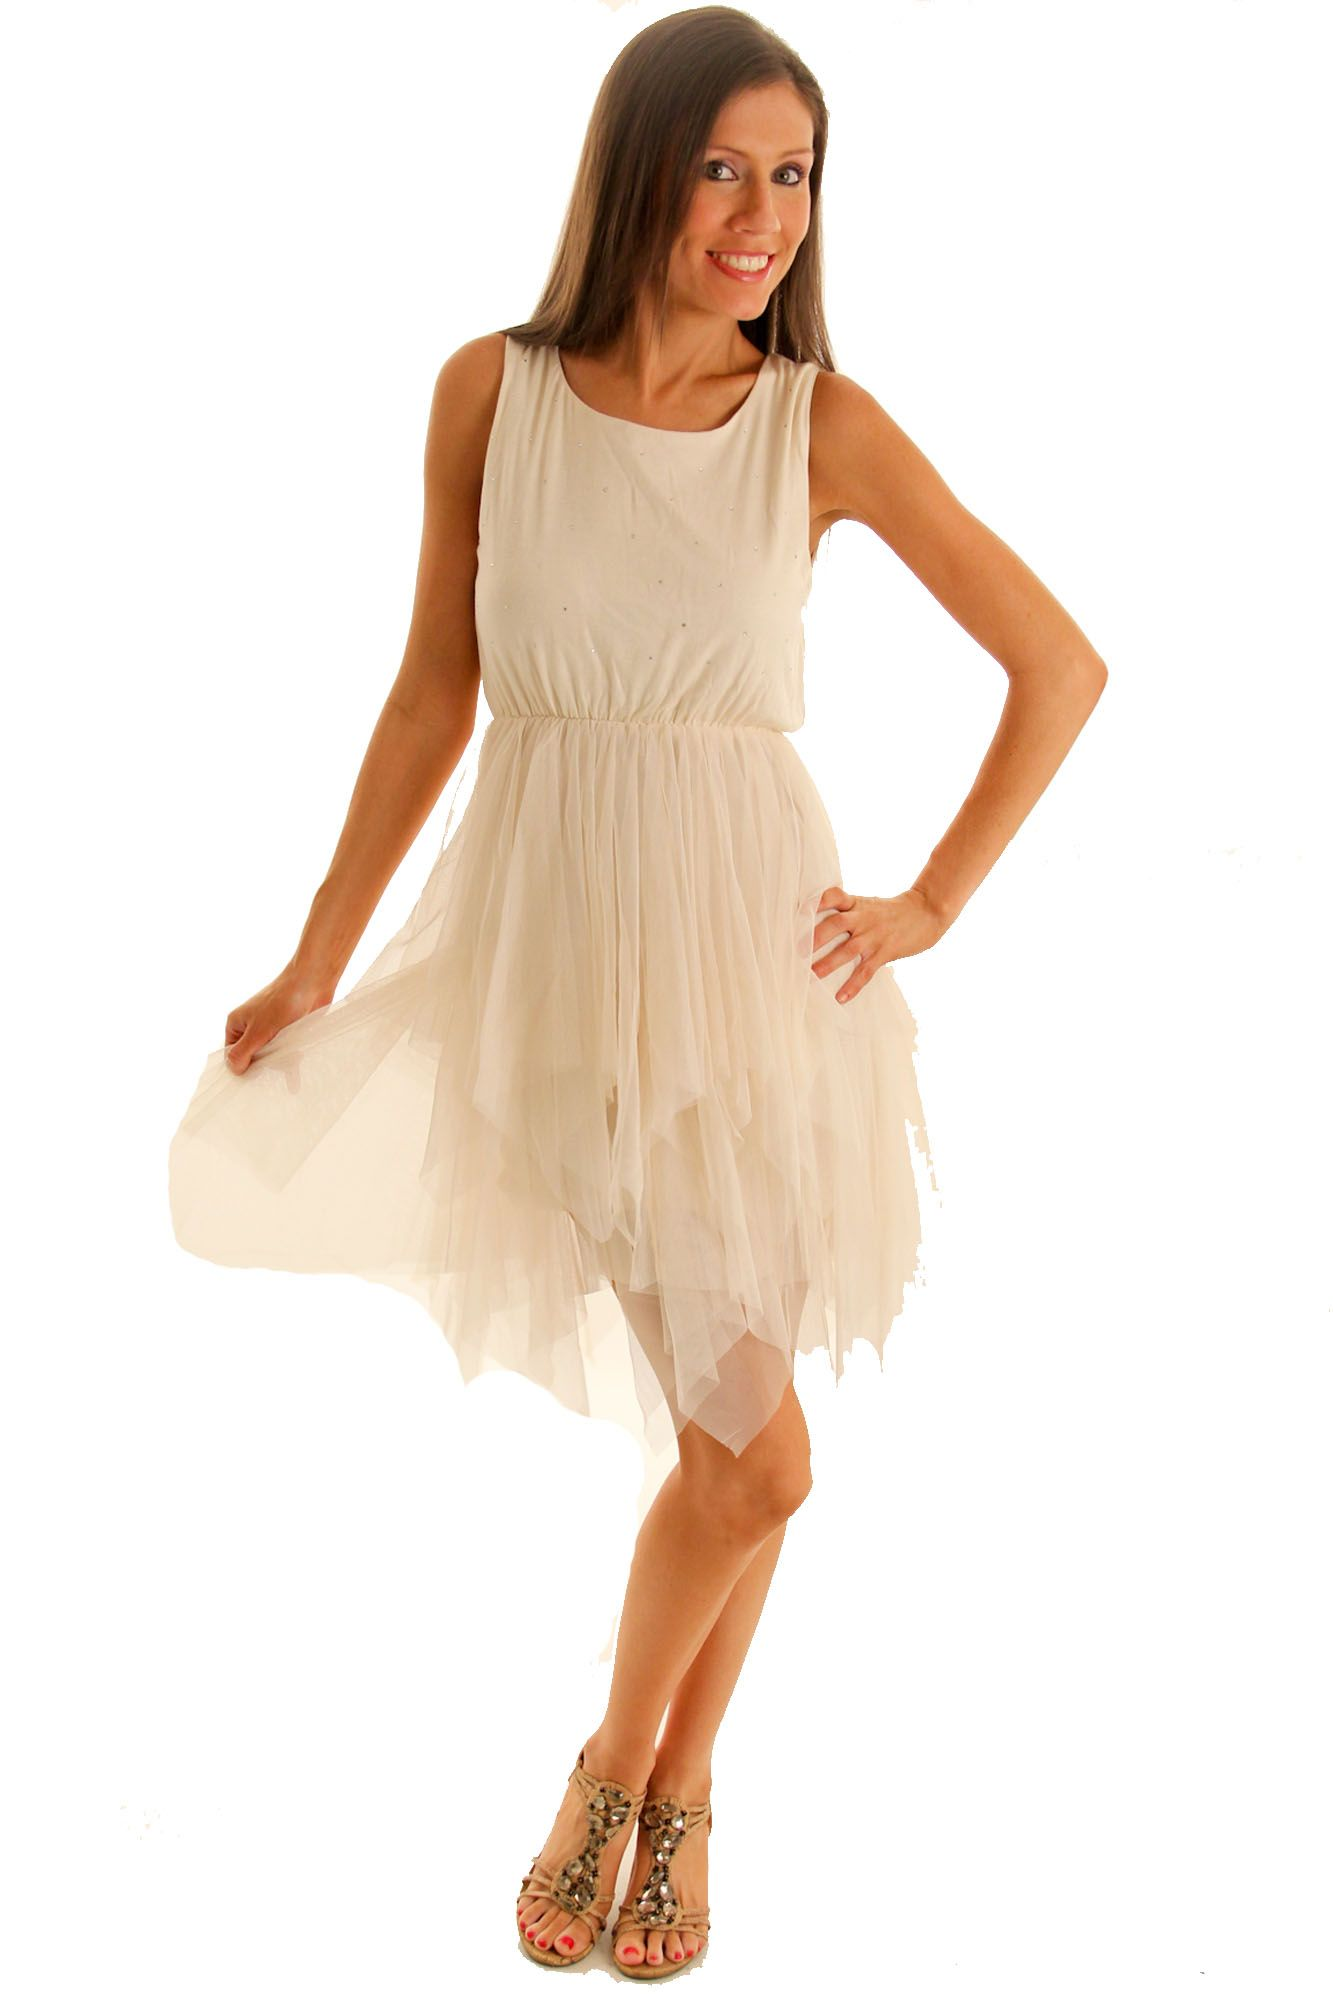 DHStyles Women's Beige Fairytale Tulle Ballerina Dress #sexytops #clubclothes #sexydresses #fashionablesexydress #sexyshirts #sexyclothes #cocktaildresses #clubwear #cheapsexydresses #clubdresses #cheaptops #partytops #partydress #haltertops #cocktaildresses #partydresses #minidress #nightclubclothes #hotfashion #juniorsclothing #cocktaildress #glamclothing #sexytop #womensclothes #clubbingclothes #juniorsclothes #juniorclothes #trendyclothing #minidresses #sexyclothing #cheappartydresses…